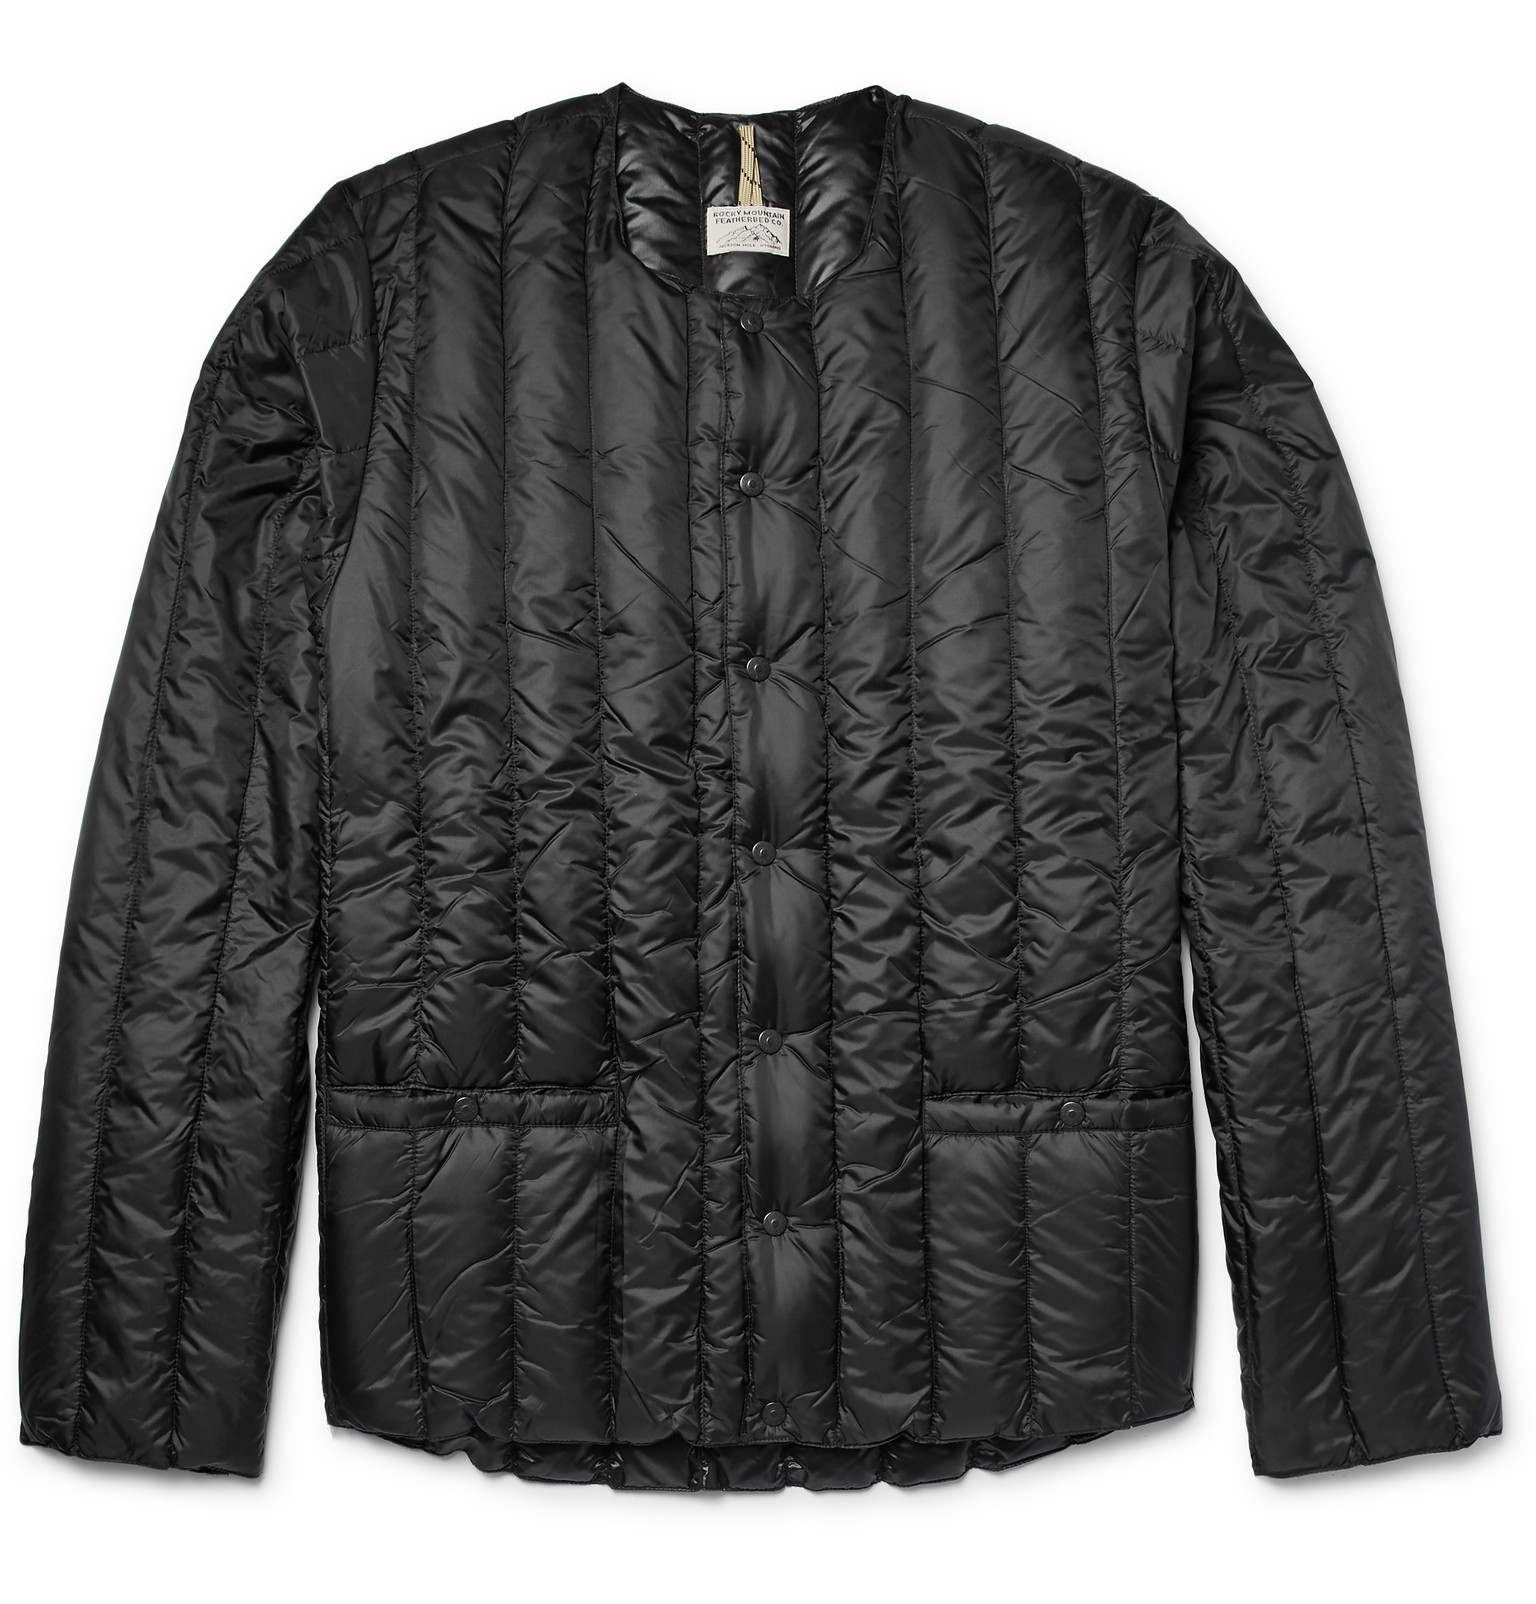 Men's Designer Lightweight and waterproof jackets - Shop Men's ...